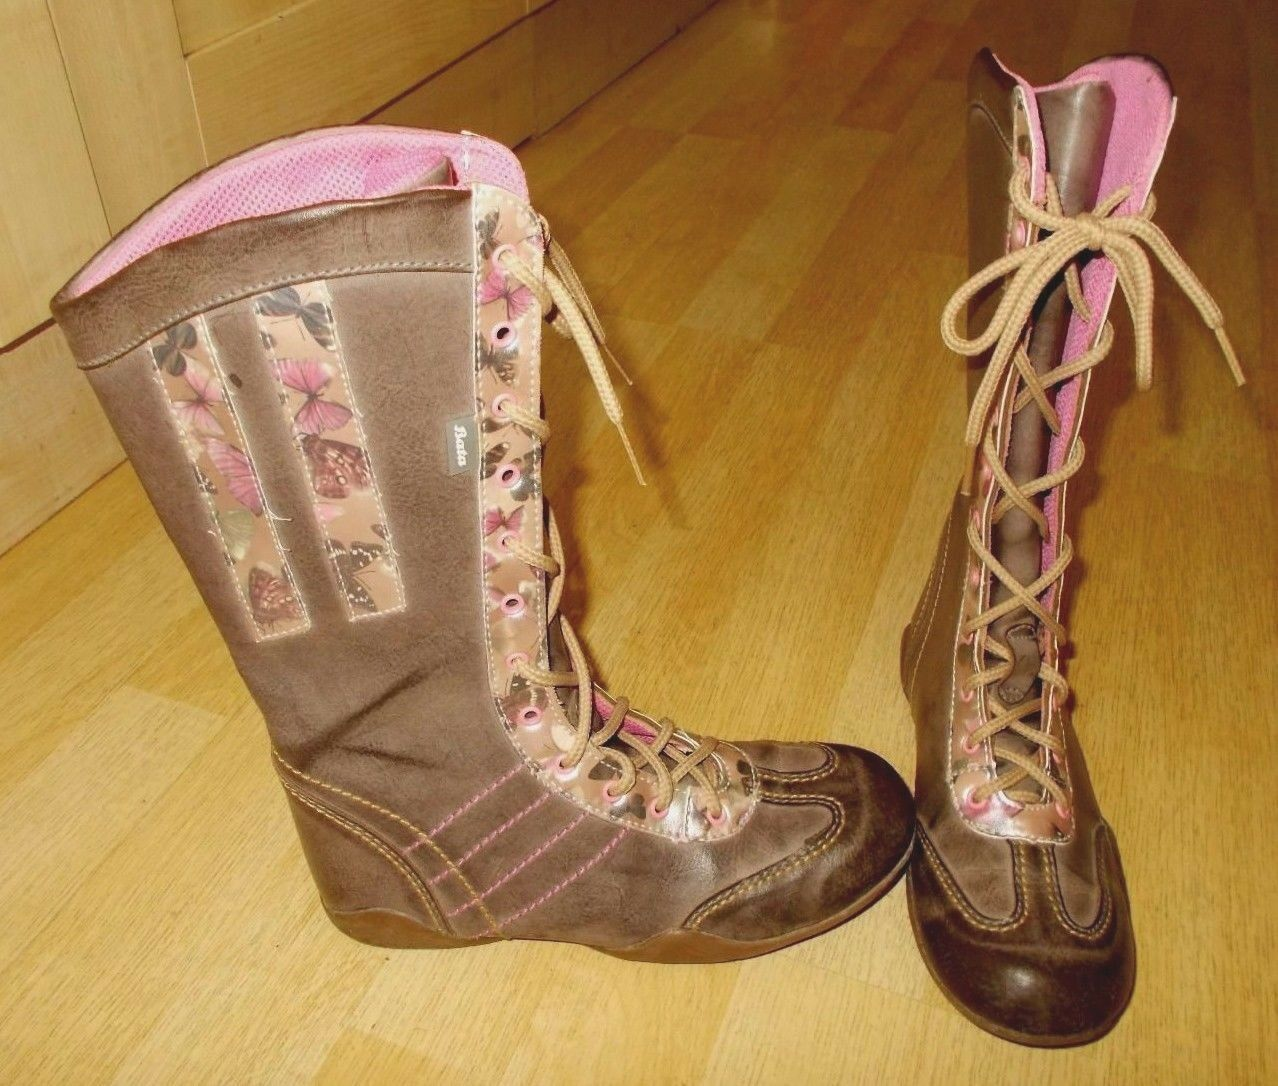 Ladies BATA Beige with Butterfly Design Lace Up Mid Calf Flat Boots - Size UK 4